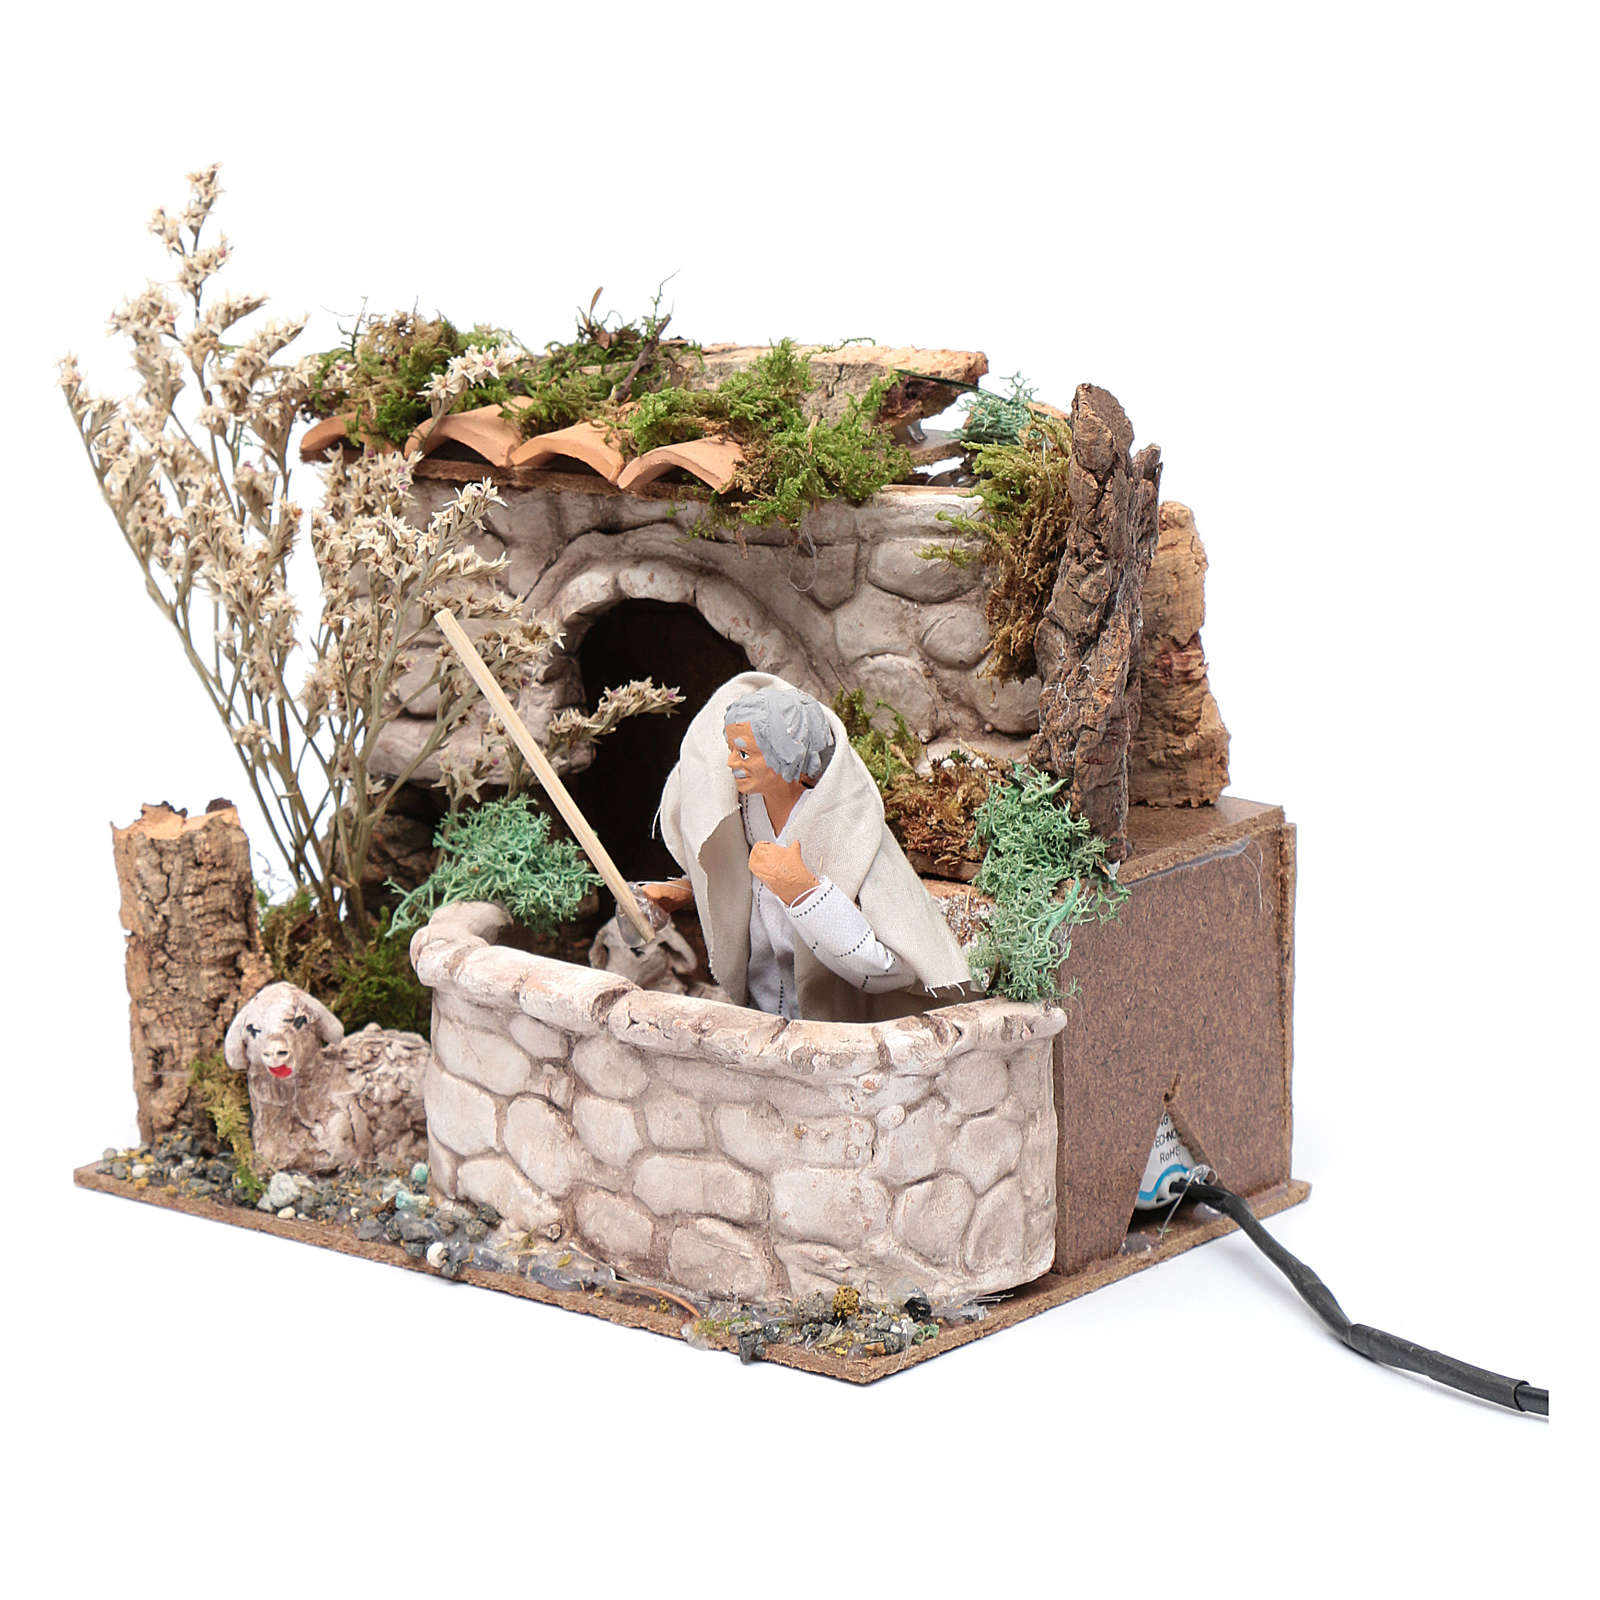 Nativity scene moving shepherd 15x20x15 cm 3